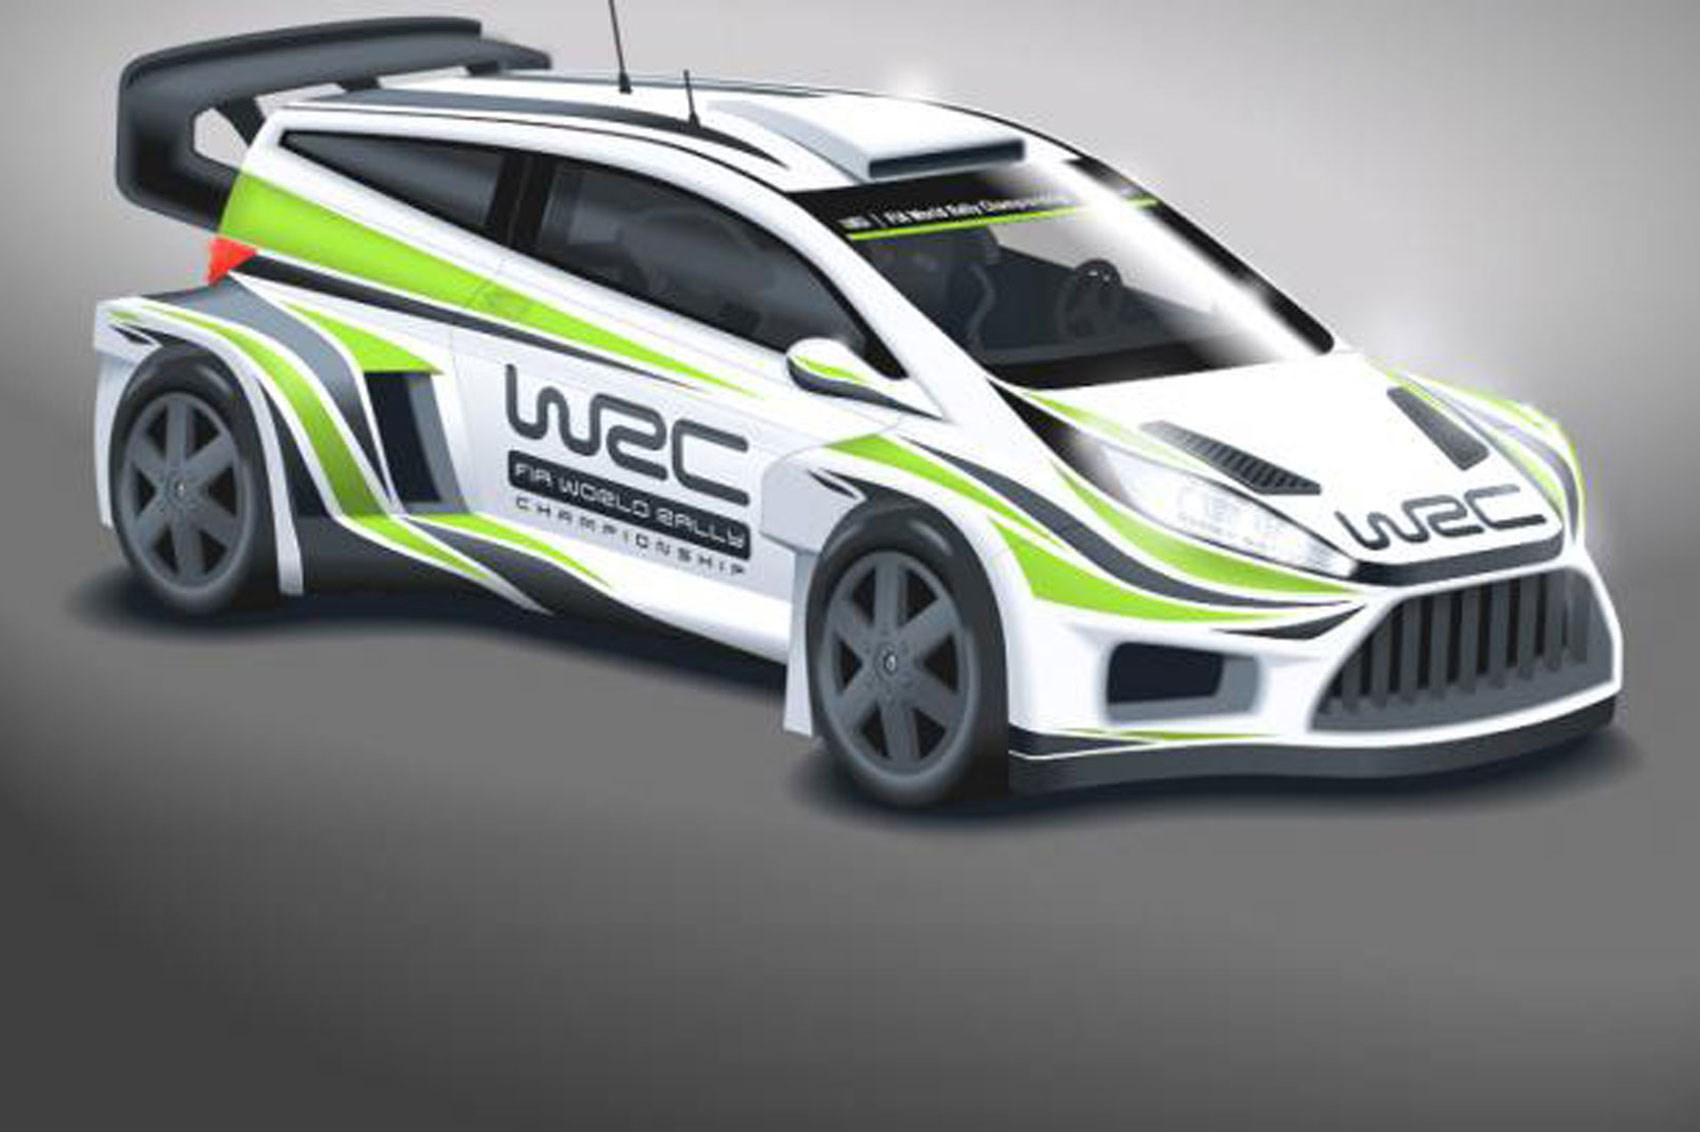 Ultrablogus  Marvelous Wild New Look For Wrc Cars In  By Car Magazine With Inspiring Wrc Cars Will Get Wider Bodies Bigger Wings And More Power For  With Extraordinary  Volkswagen Passat Interior Also Toyota Corolla  Interior In Addition  Toyota Rav Interior And Mustang Eleanor Interior As Well As  Bmw  Series Interior Additionally Nissan Murano  Interior From Carmagazinecouk With Ultrablogus  Inspiring Wild New Look For Wrc Cars In  By Car Magazine With Extraordinary Wrc Cars Will Get Wider Bodies Bigger Wings And More Power For  And Marvelous  Volkswagen Passat Interior Also Toyota Corolla  Interior In Addition  Toyota Rav Interior From Carmagazinecouk